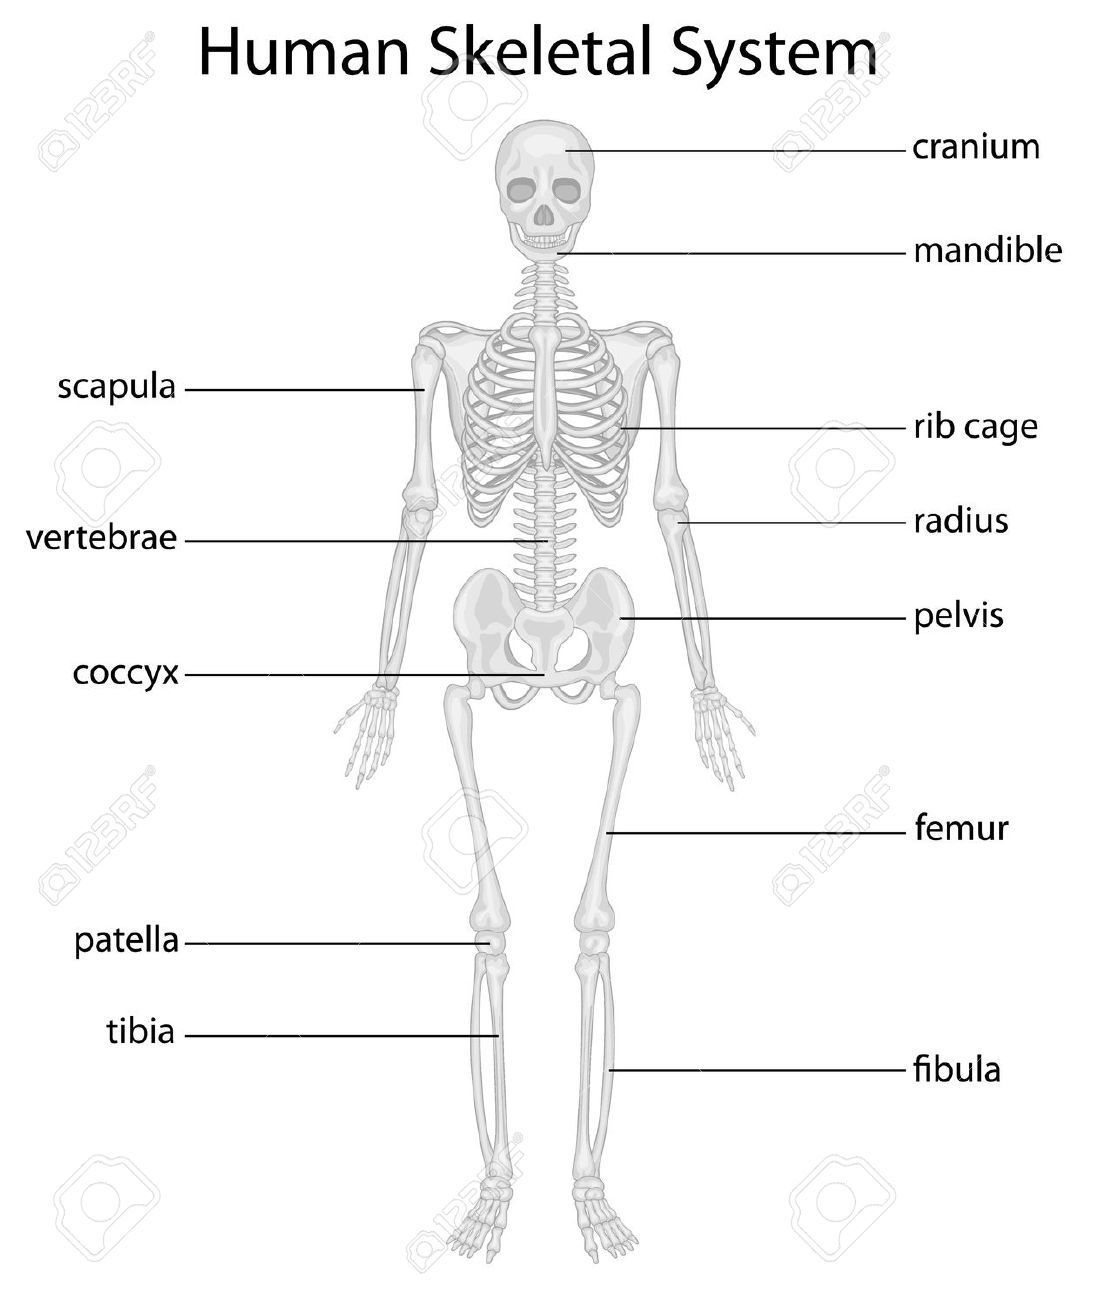 Body Skeleton Diagram Without Labels Skeletal System Diagram Without Labels Label Long Bone